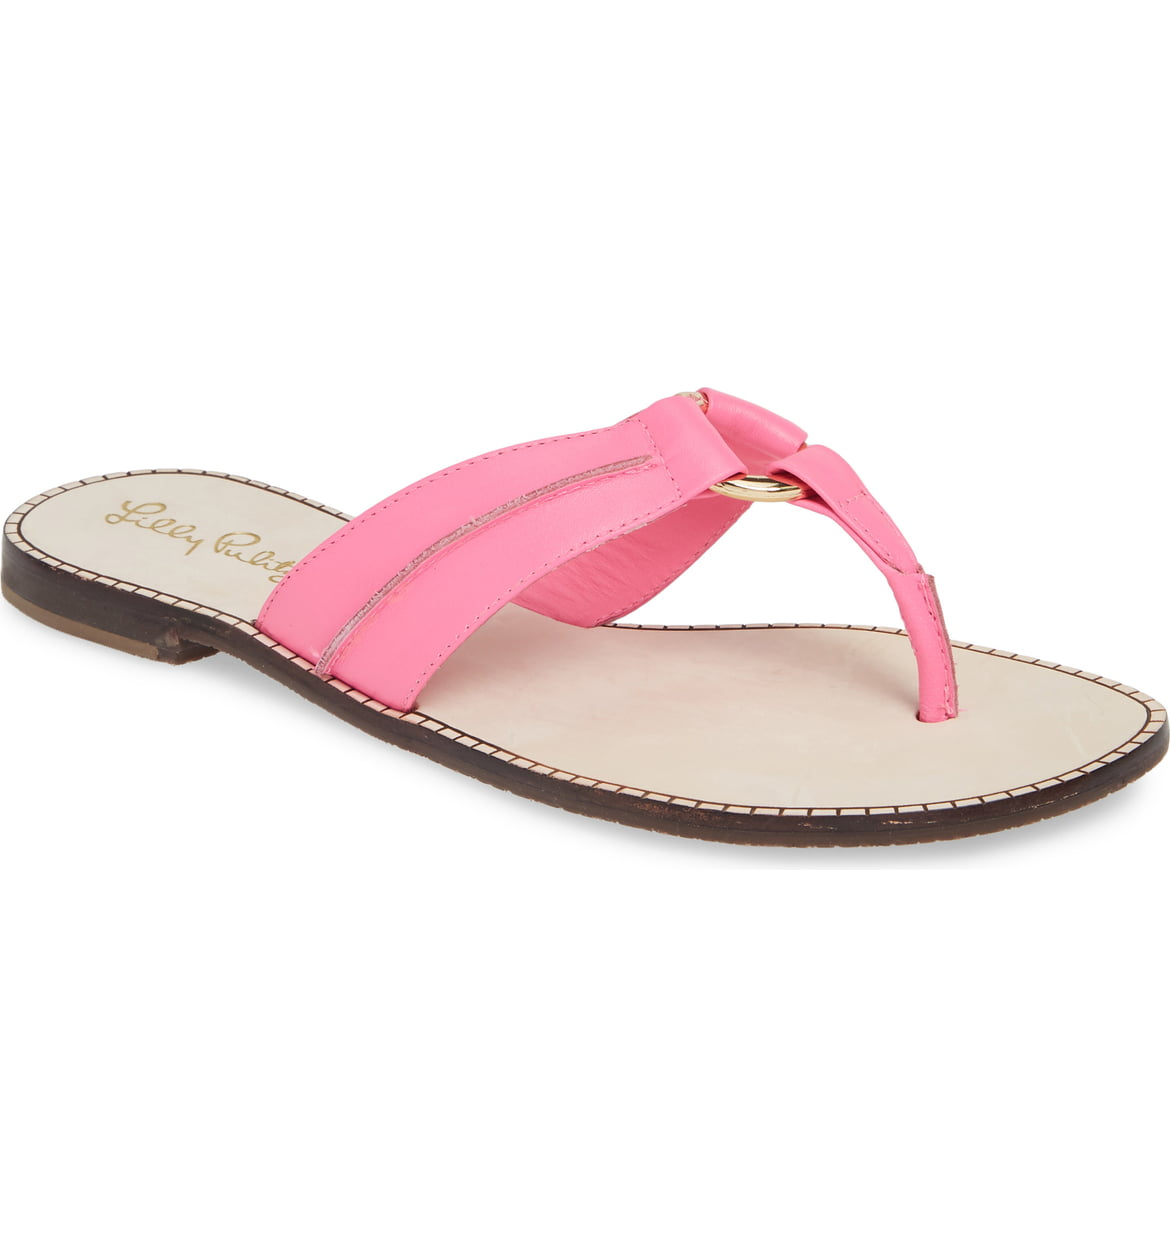 McKim Metallic Flip Flop, PINK TROPICS LEATHER